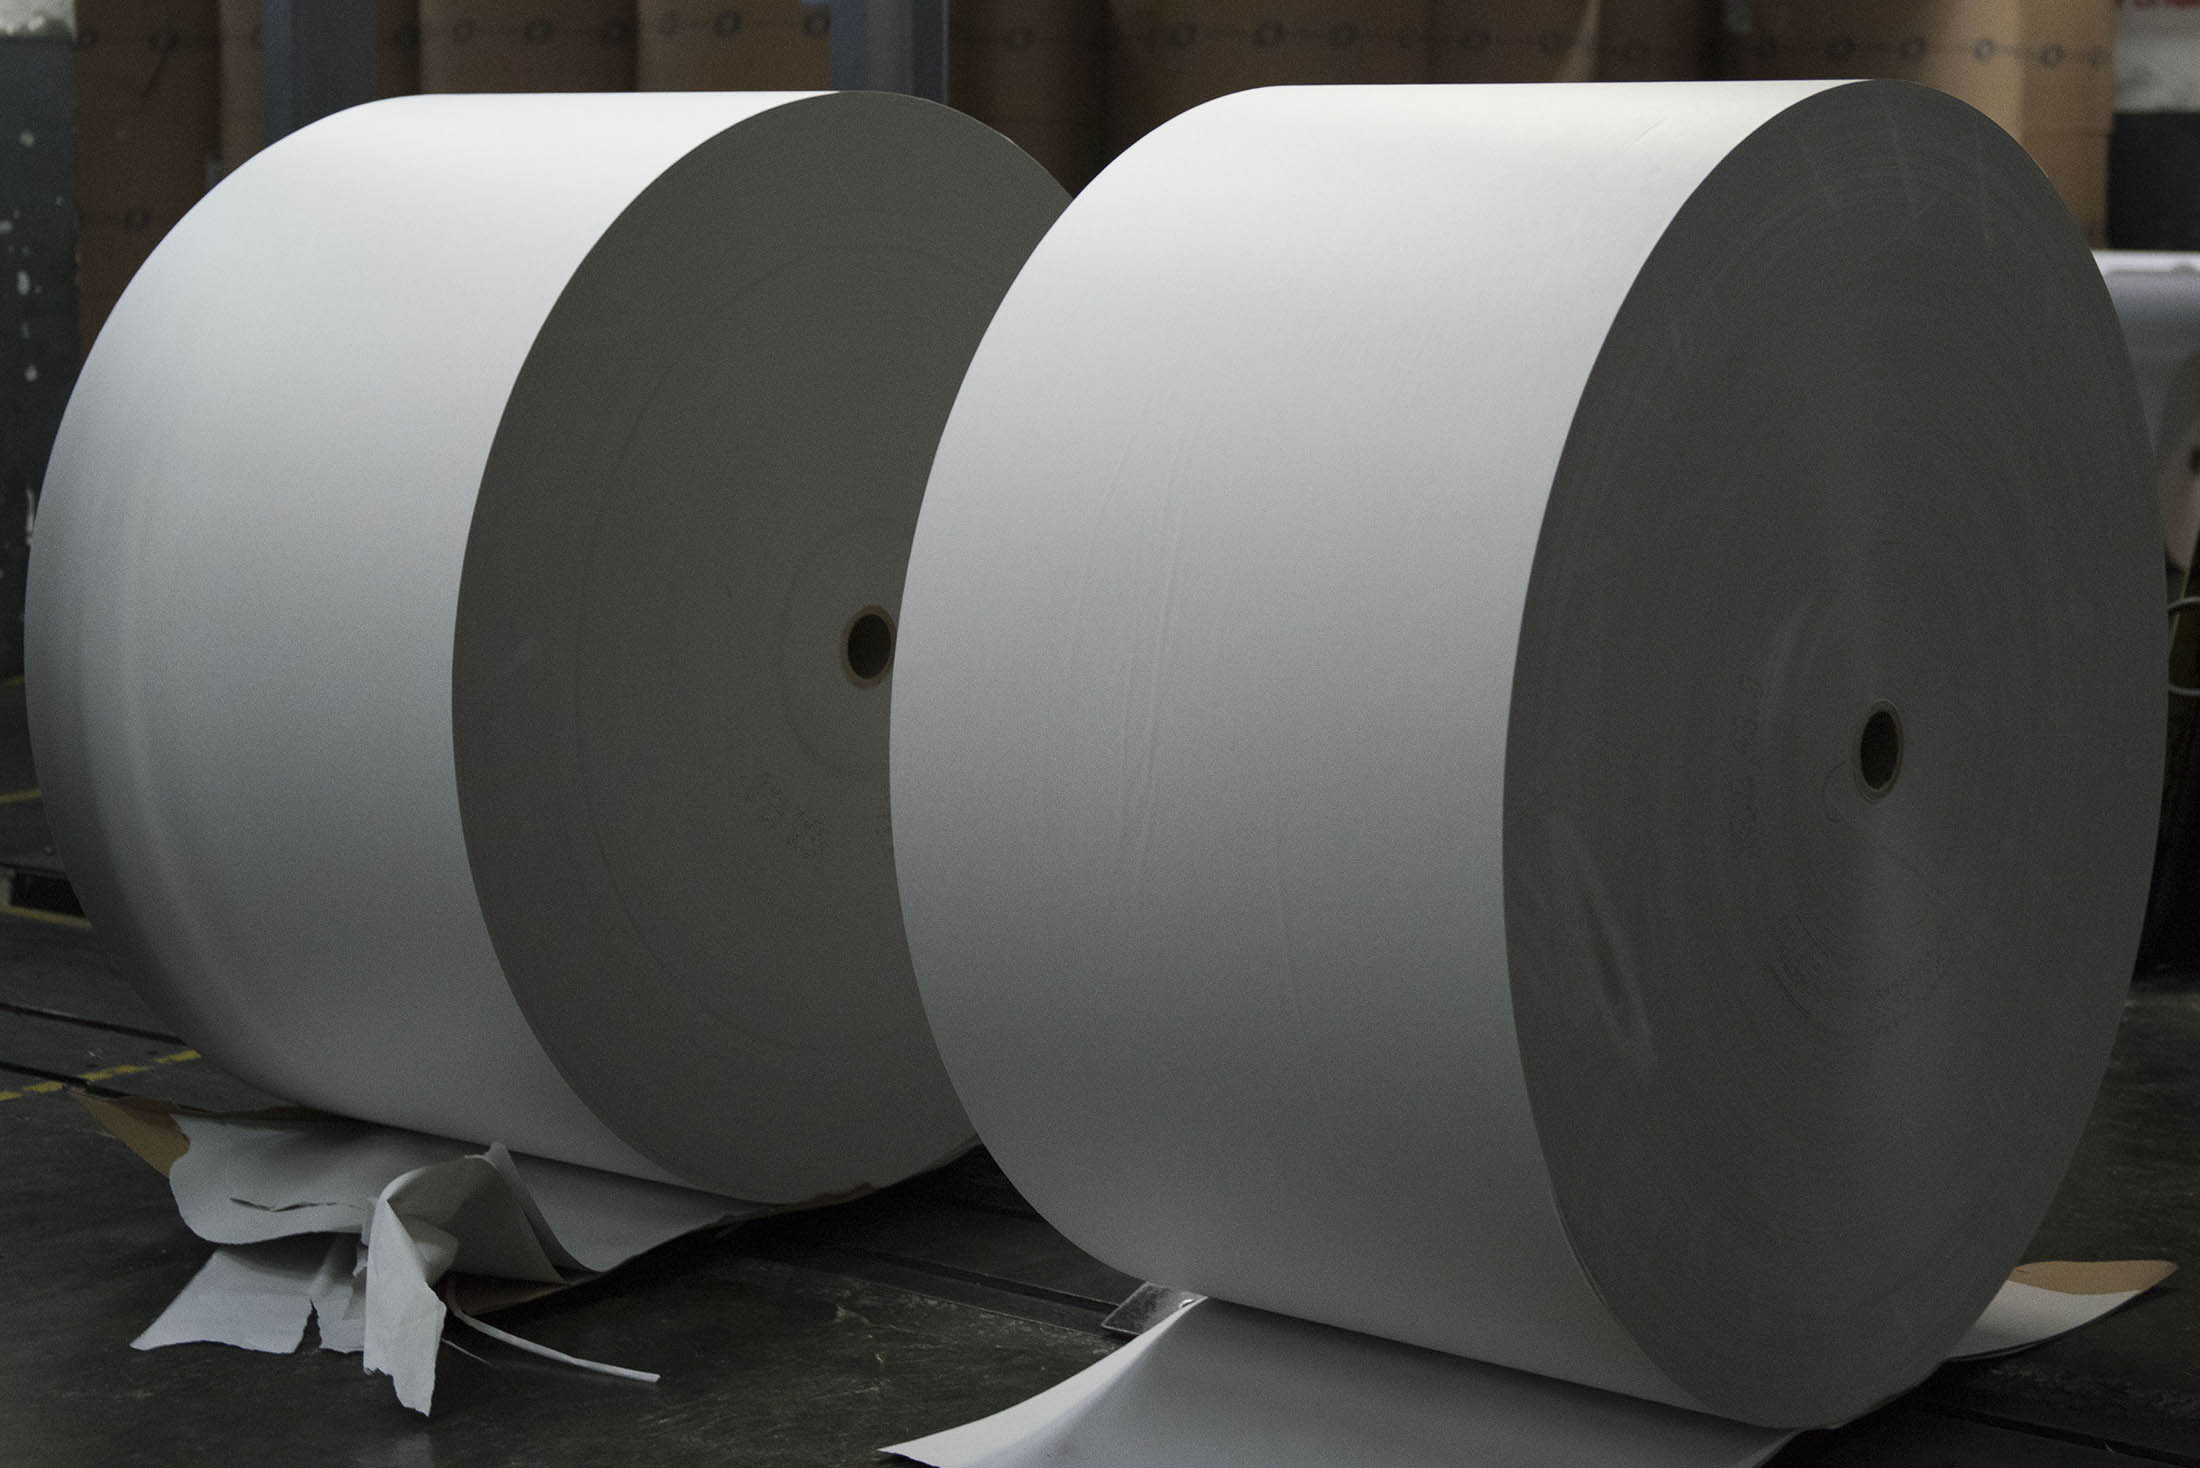 Paper Made From Stone Tempts Japans Biggest Printer to Invest